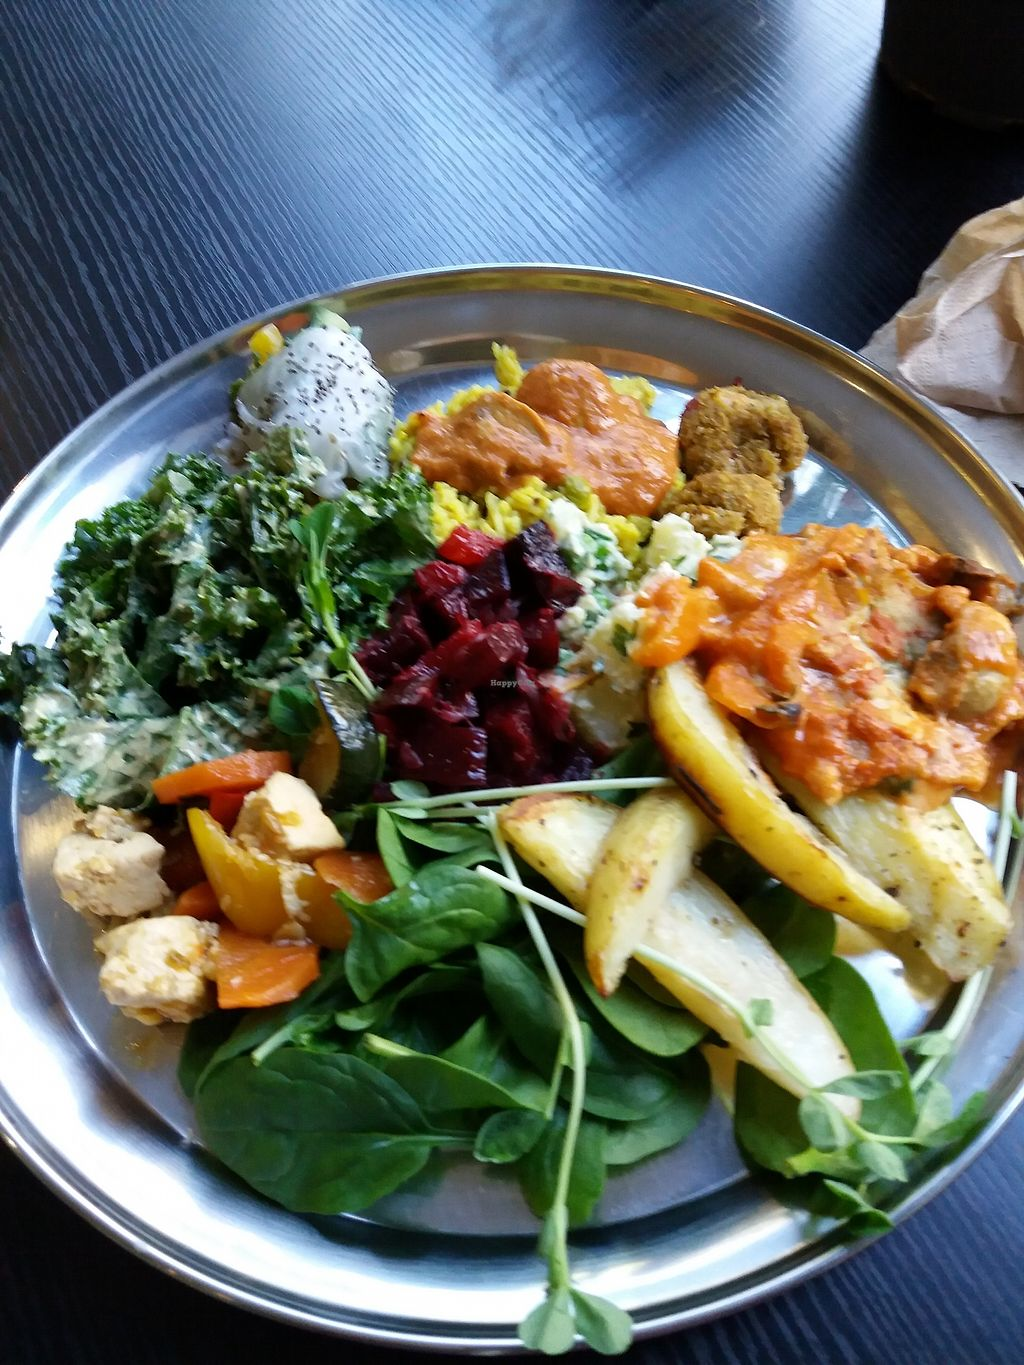 """Photo of OM Vegan Kitchen  by <a href=""""/members/profile/veganvirtues"""">veganvirtues</a> <br/>Buffet selection <br/> July 21, 2017  - <a href='/contact/abuse/image/80628/282711'>Report</a>"""